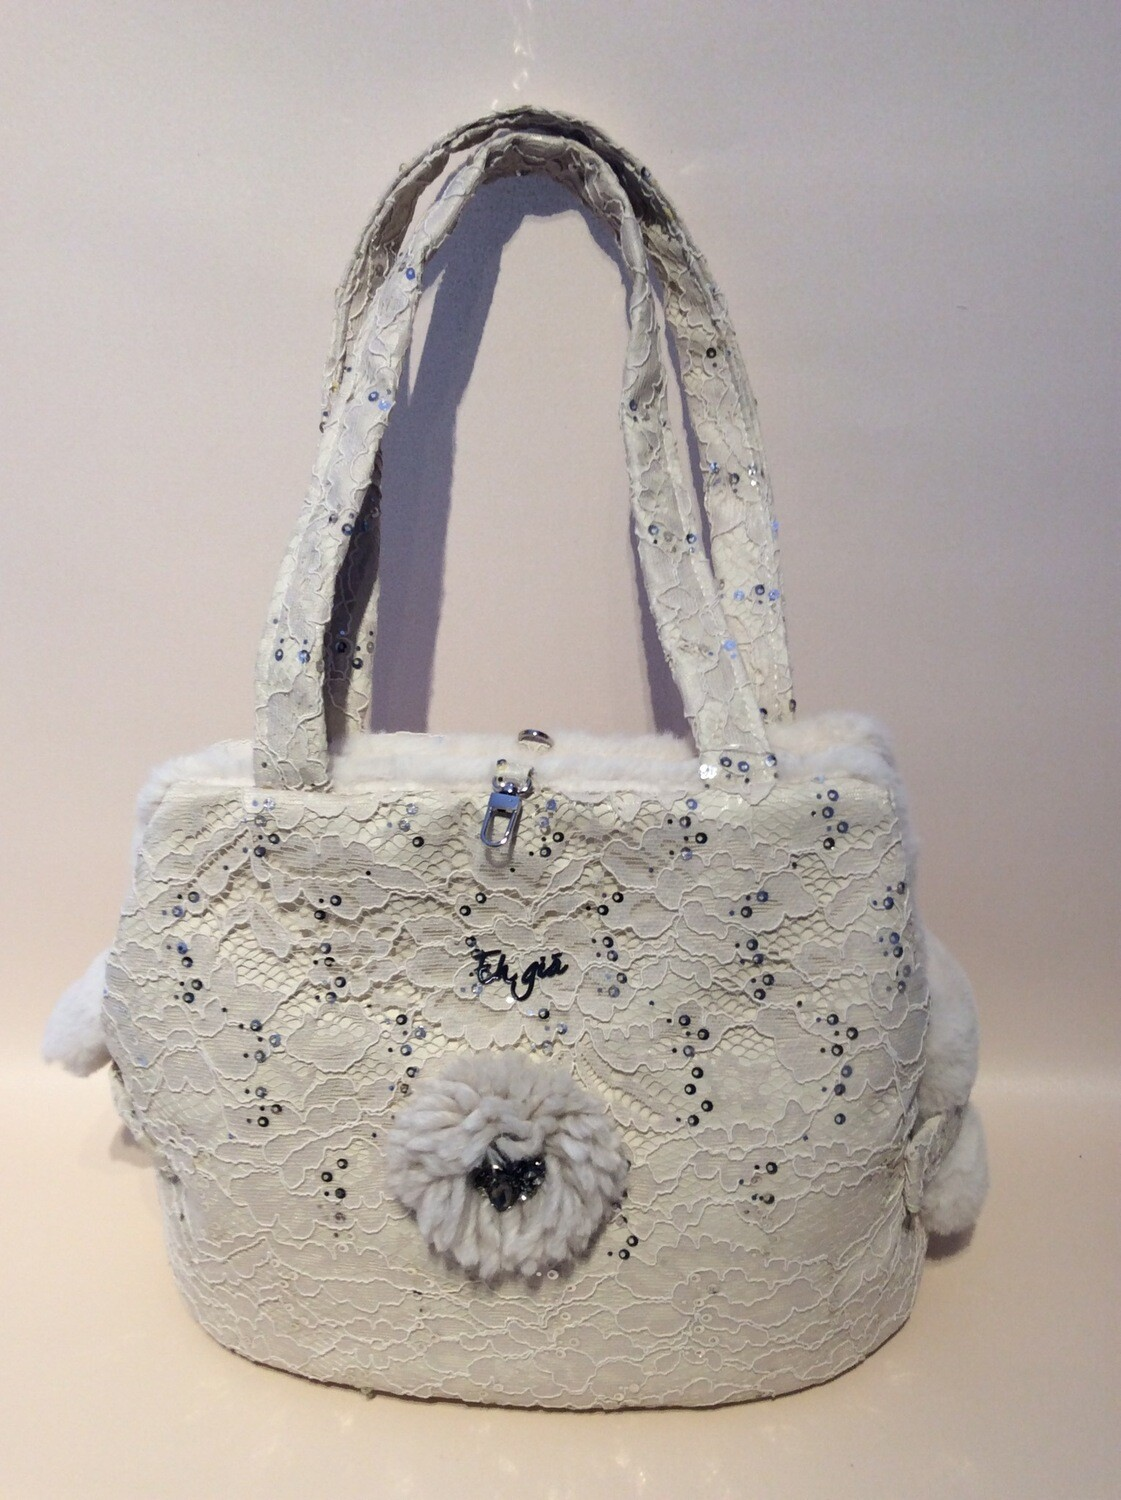 Fair bag S2 with lace